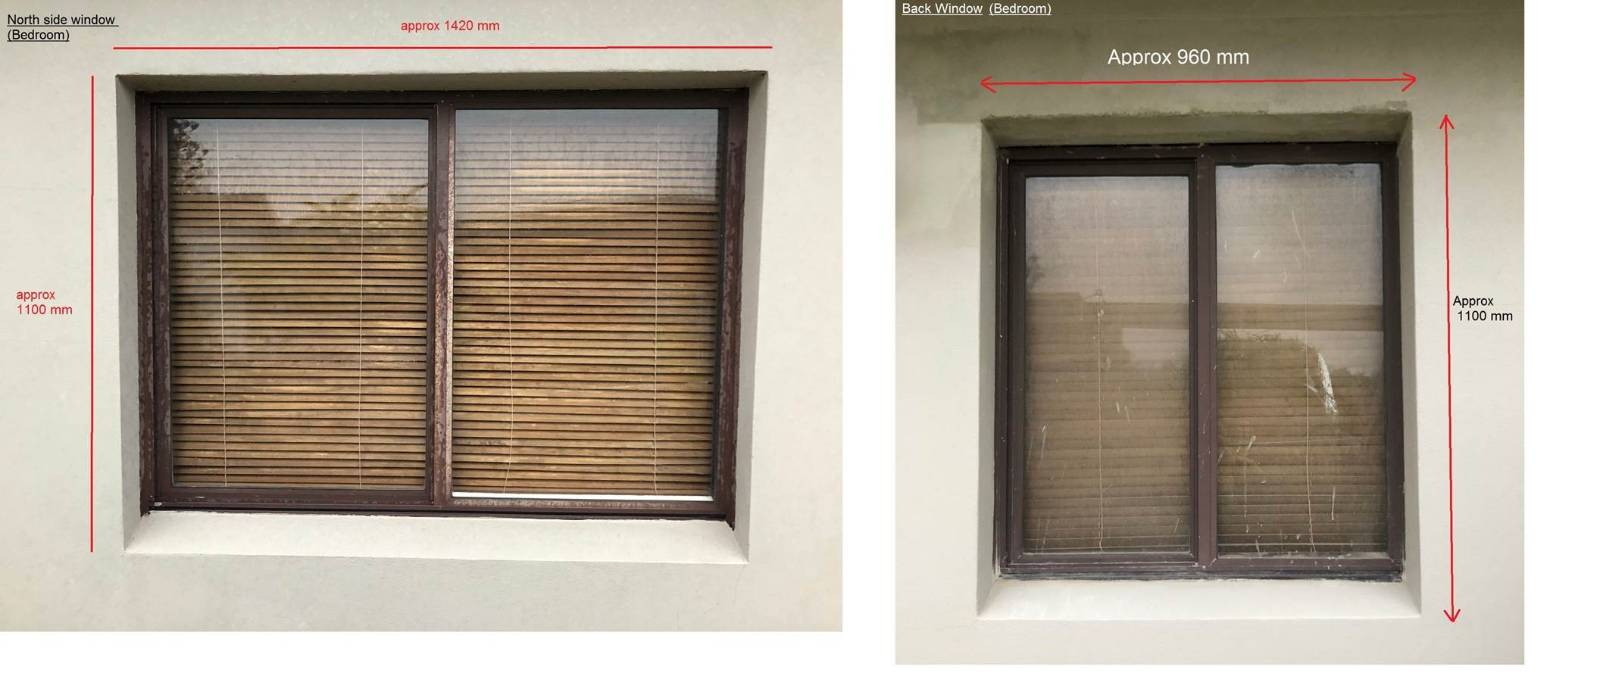 Remove & replace aluminium windows in double brick wall